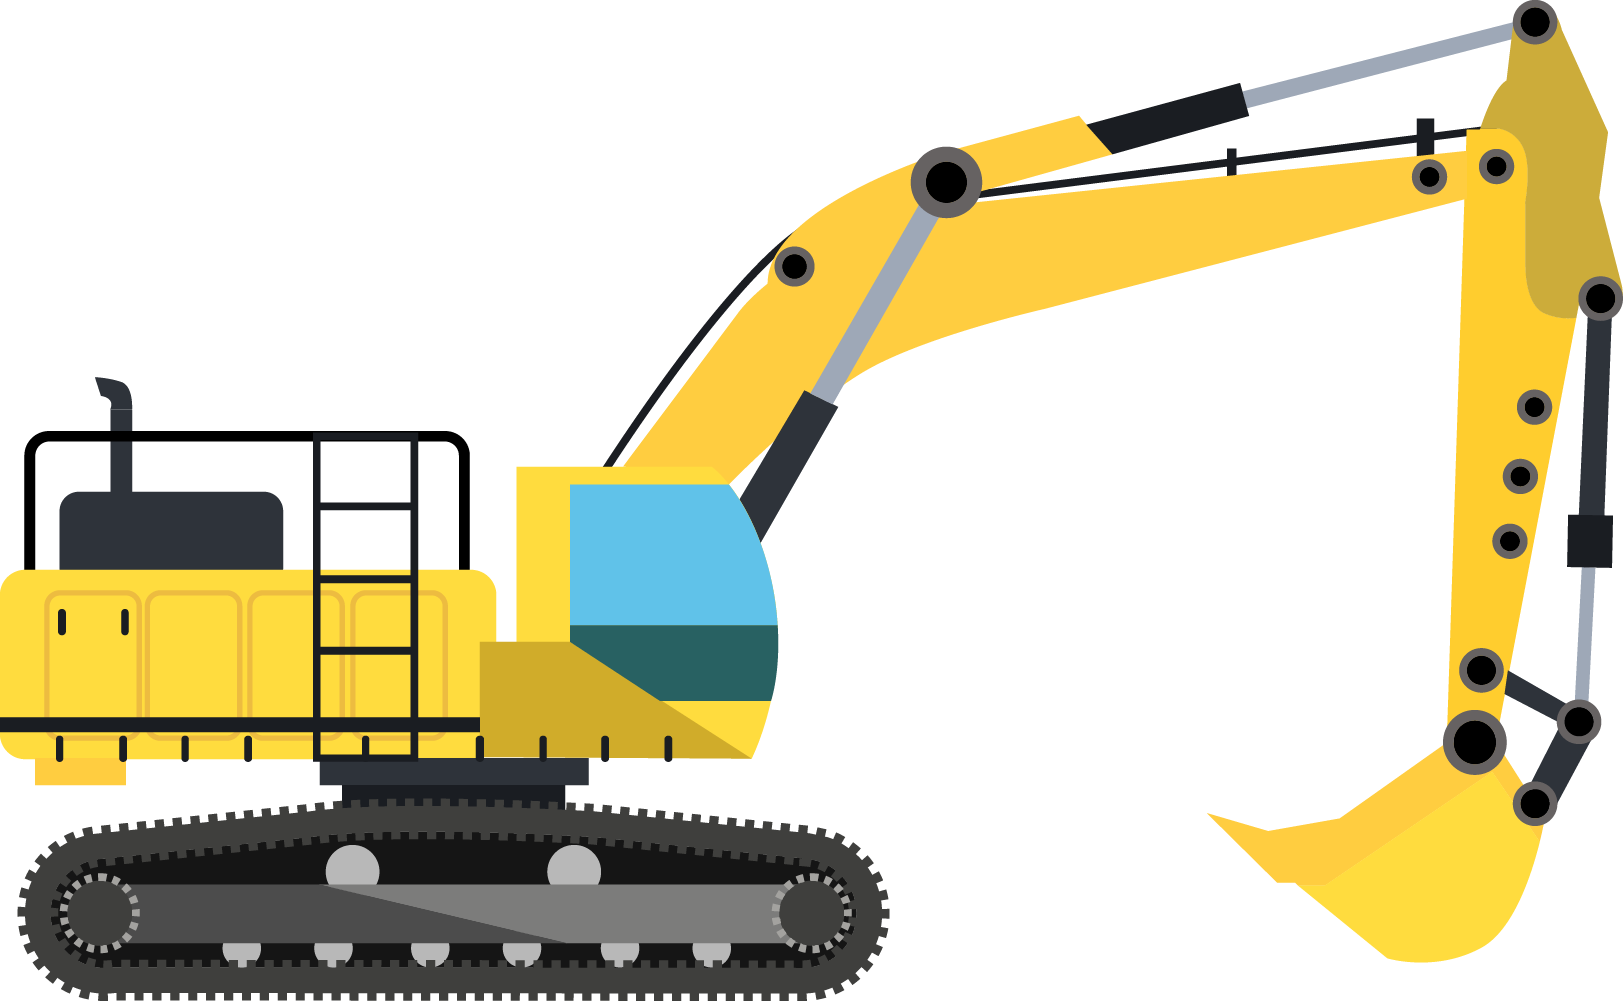 1623x1001 Excavator Architectural Engineering Machine Heavy Equipment